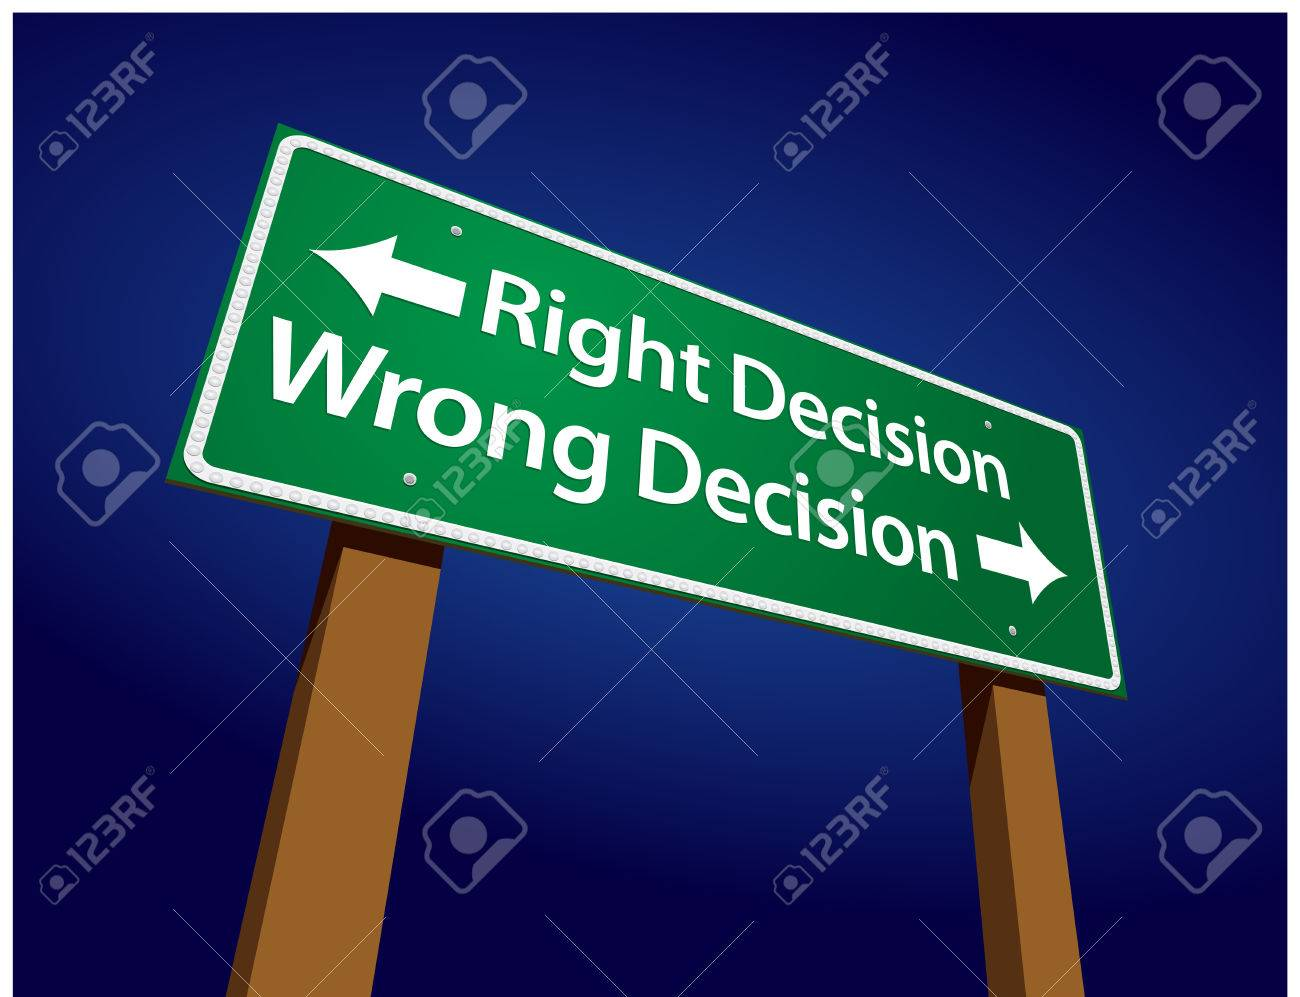 Right Decision, Wrong Decision Green Road Sign Illustration on a Radiant Blue Background. Stock Vector - 5308198